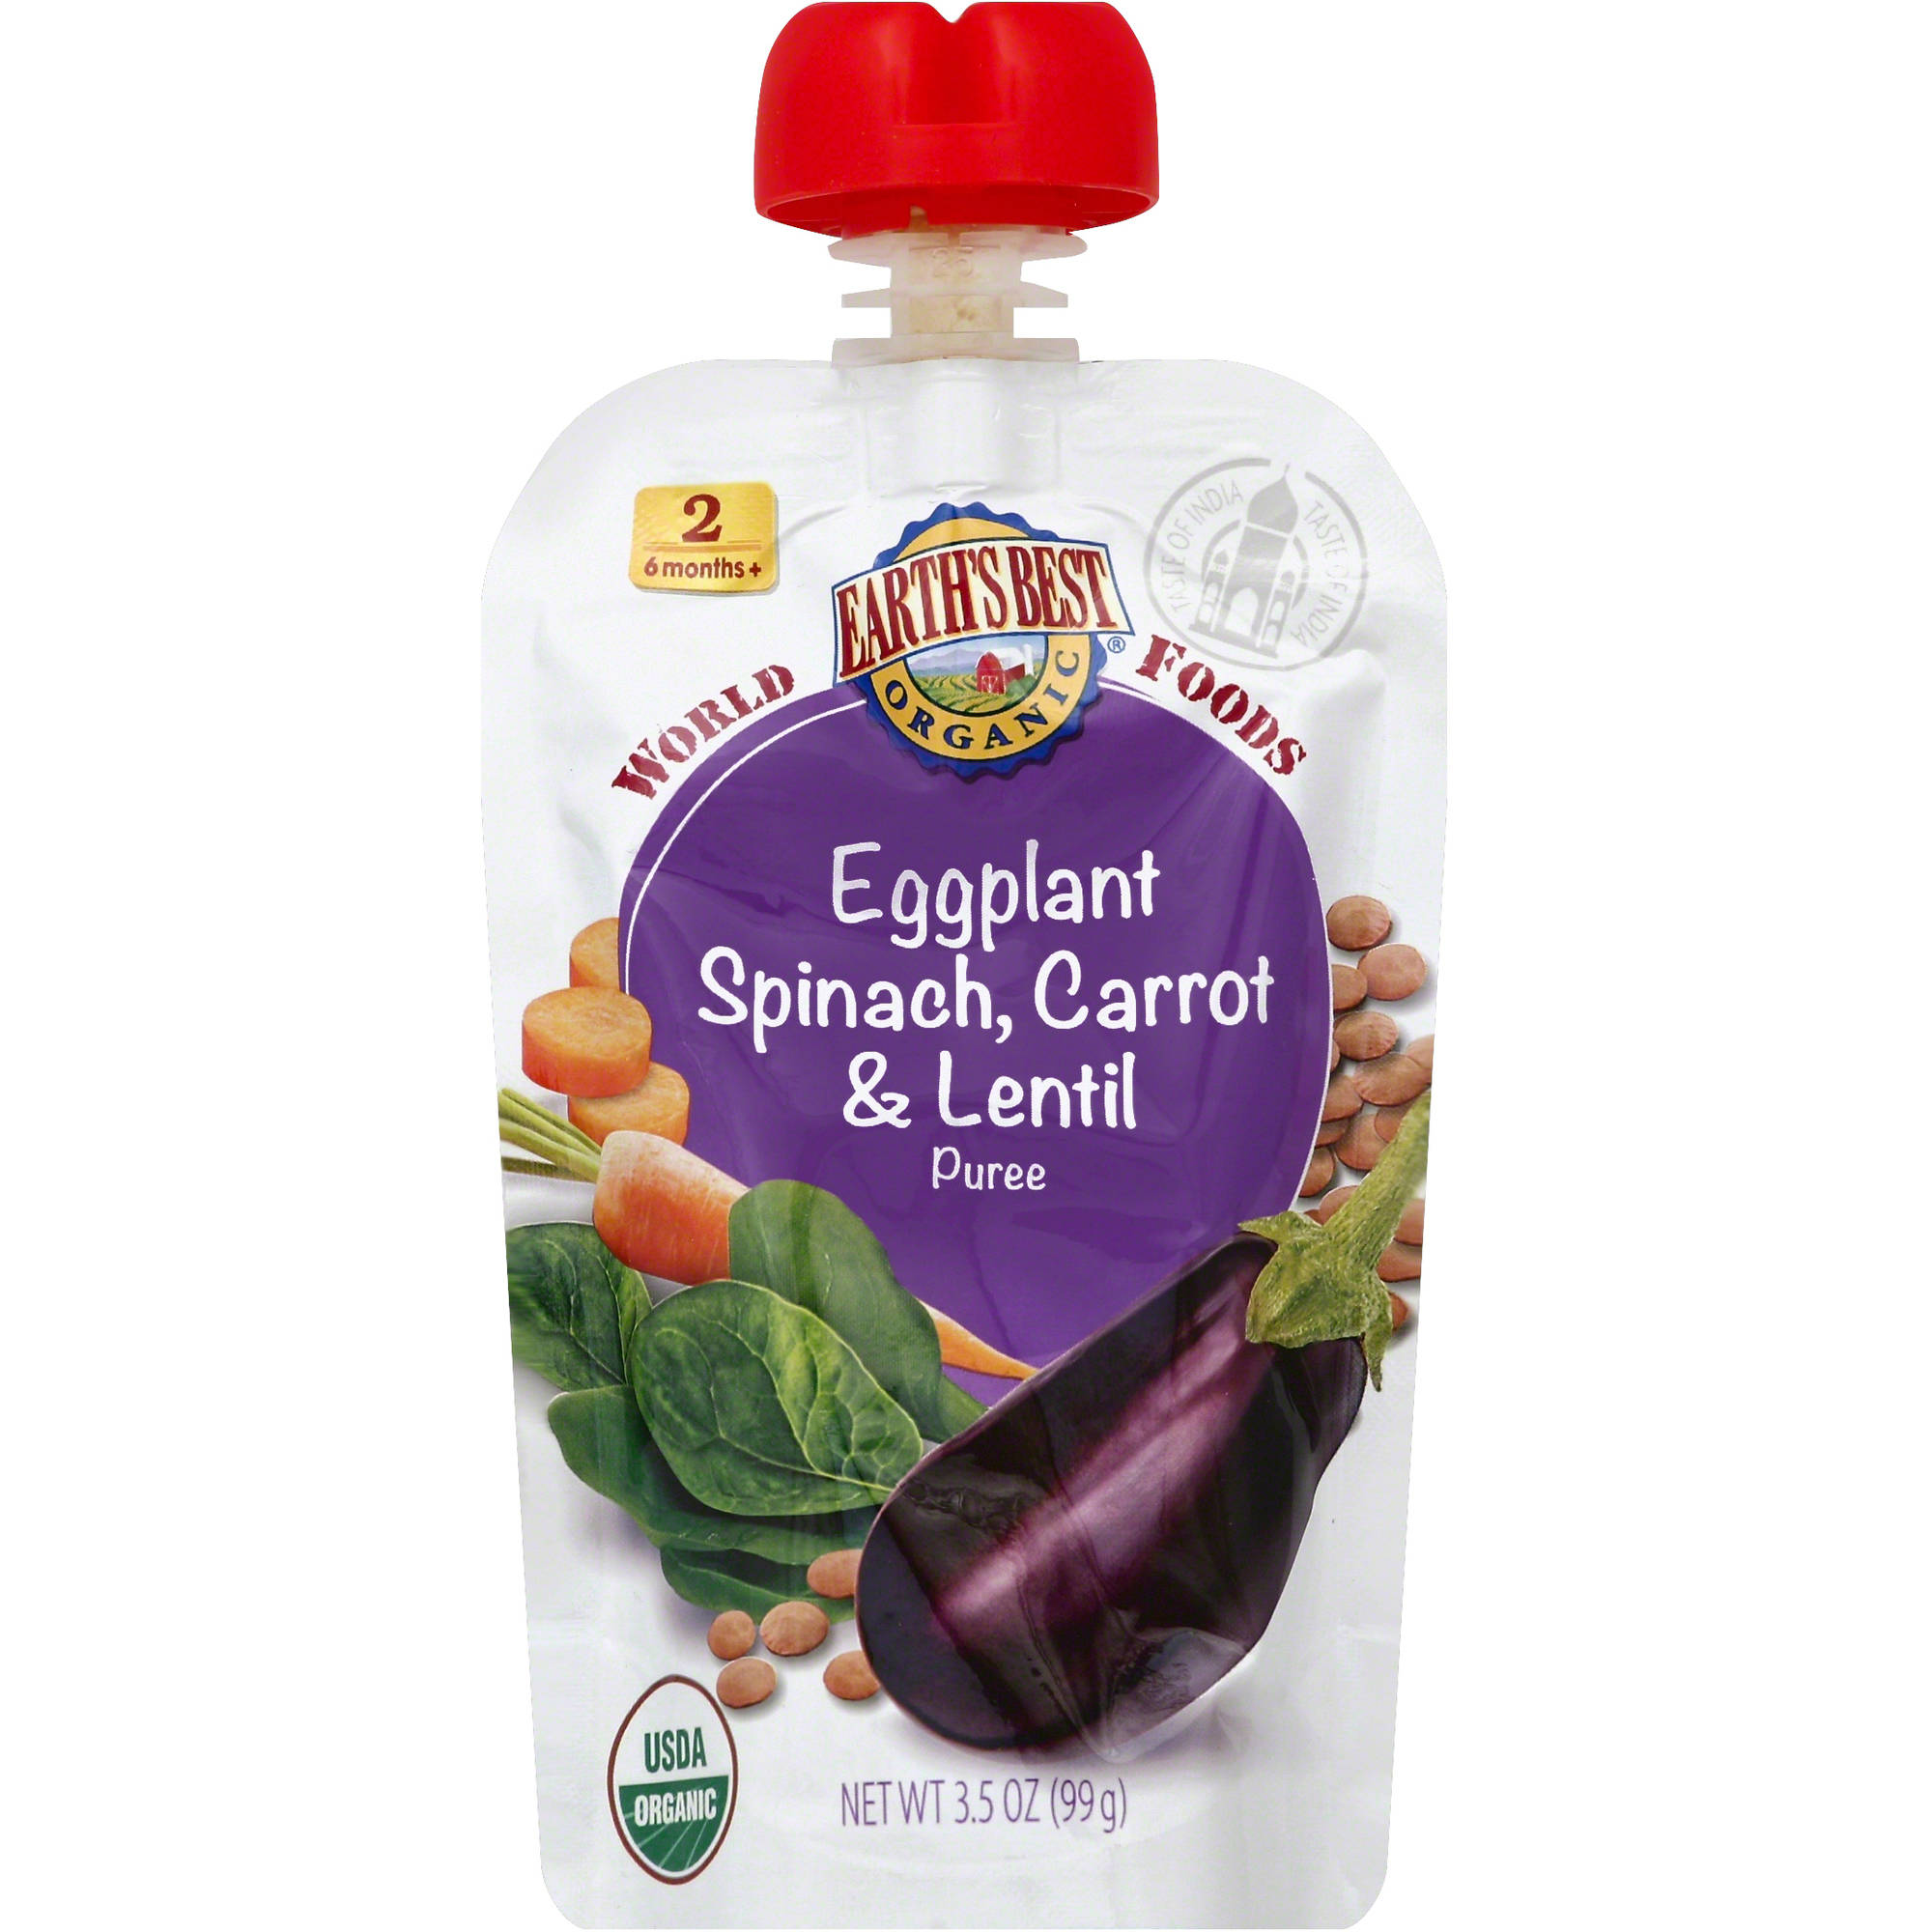 Earth's Best Organic World Foods Eggplant, Spinach, Carrot & Lentil Puree Stage 2 Baby Food, 3.5 oz (Pack of 6)